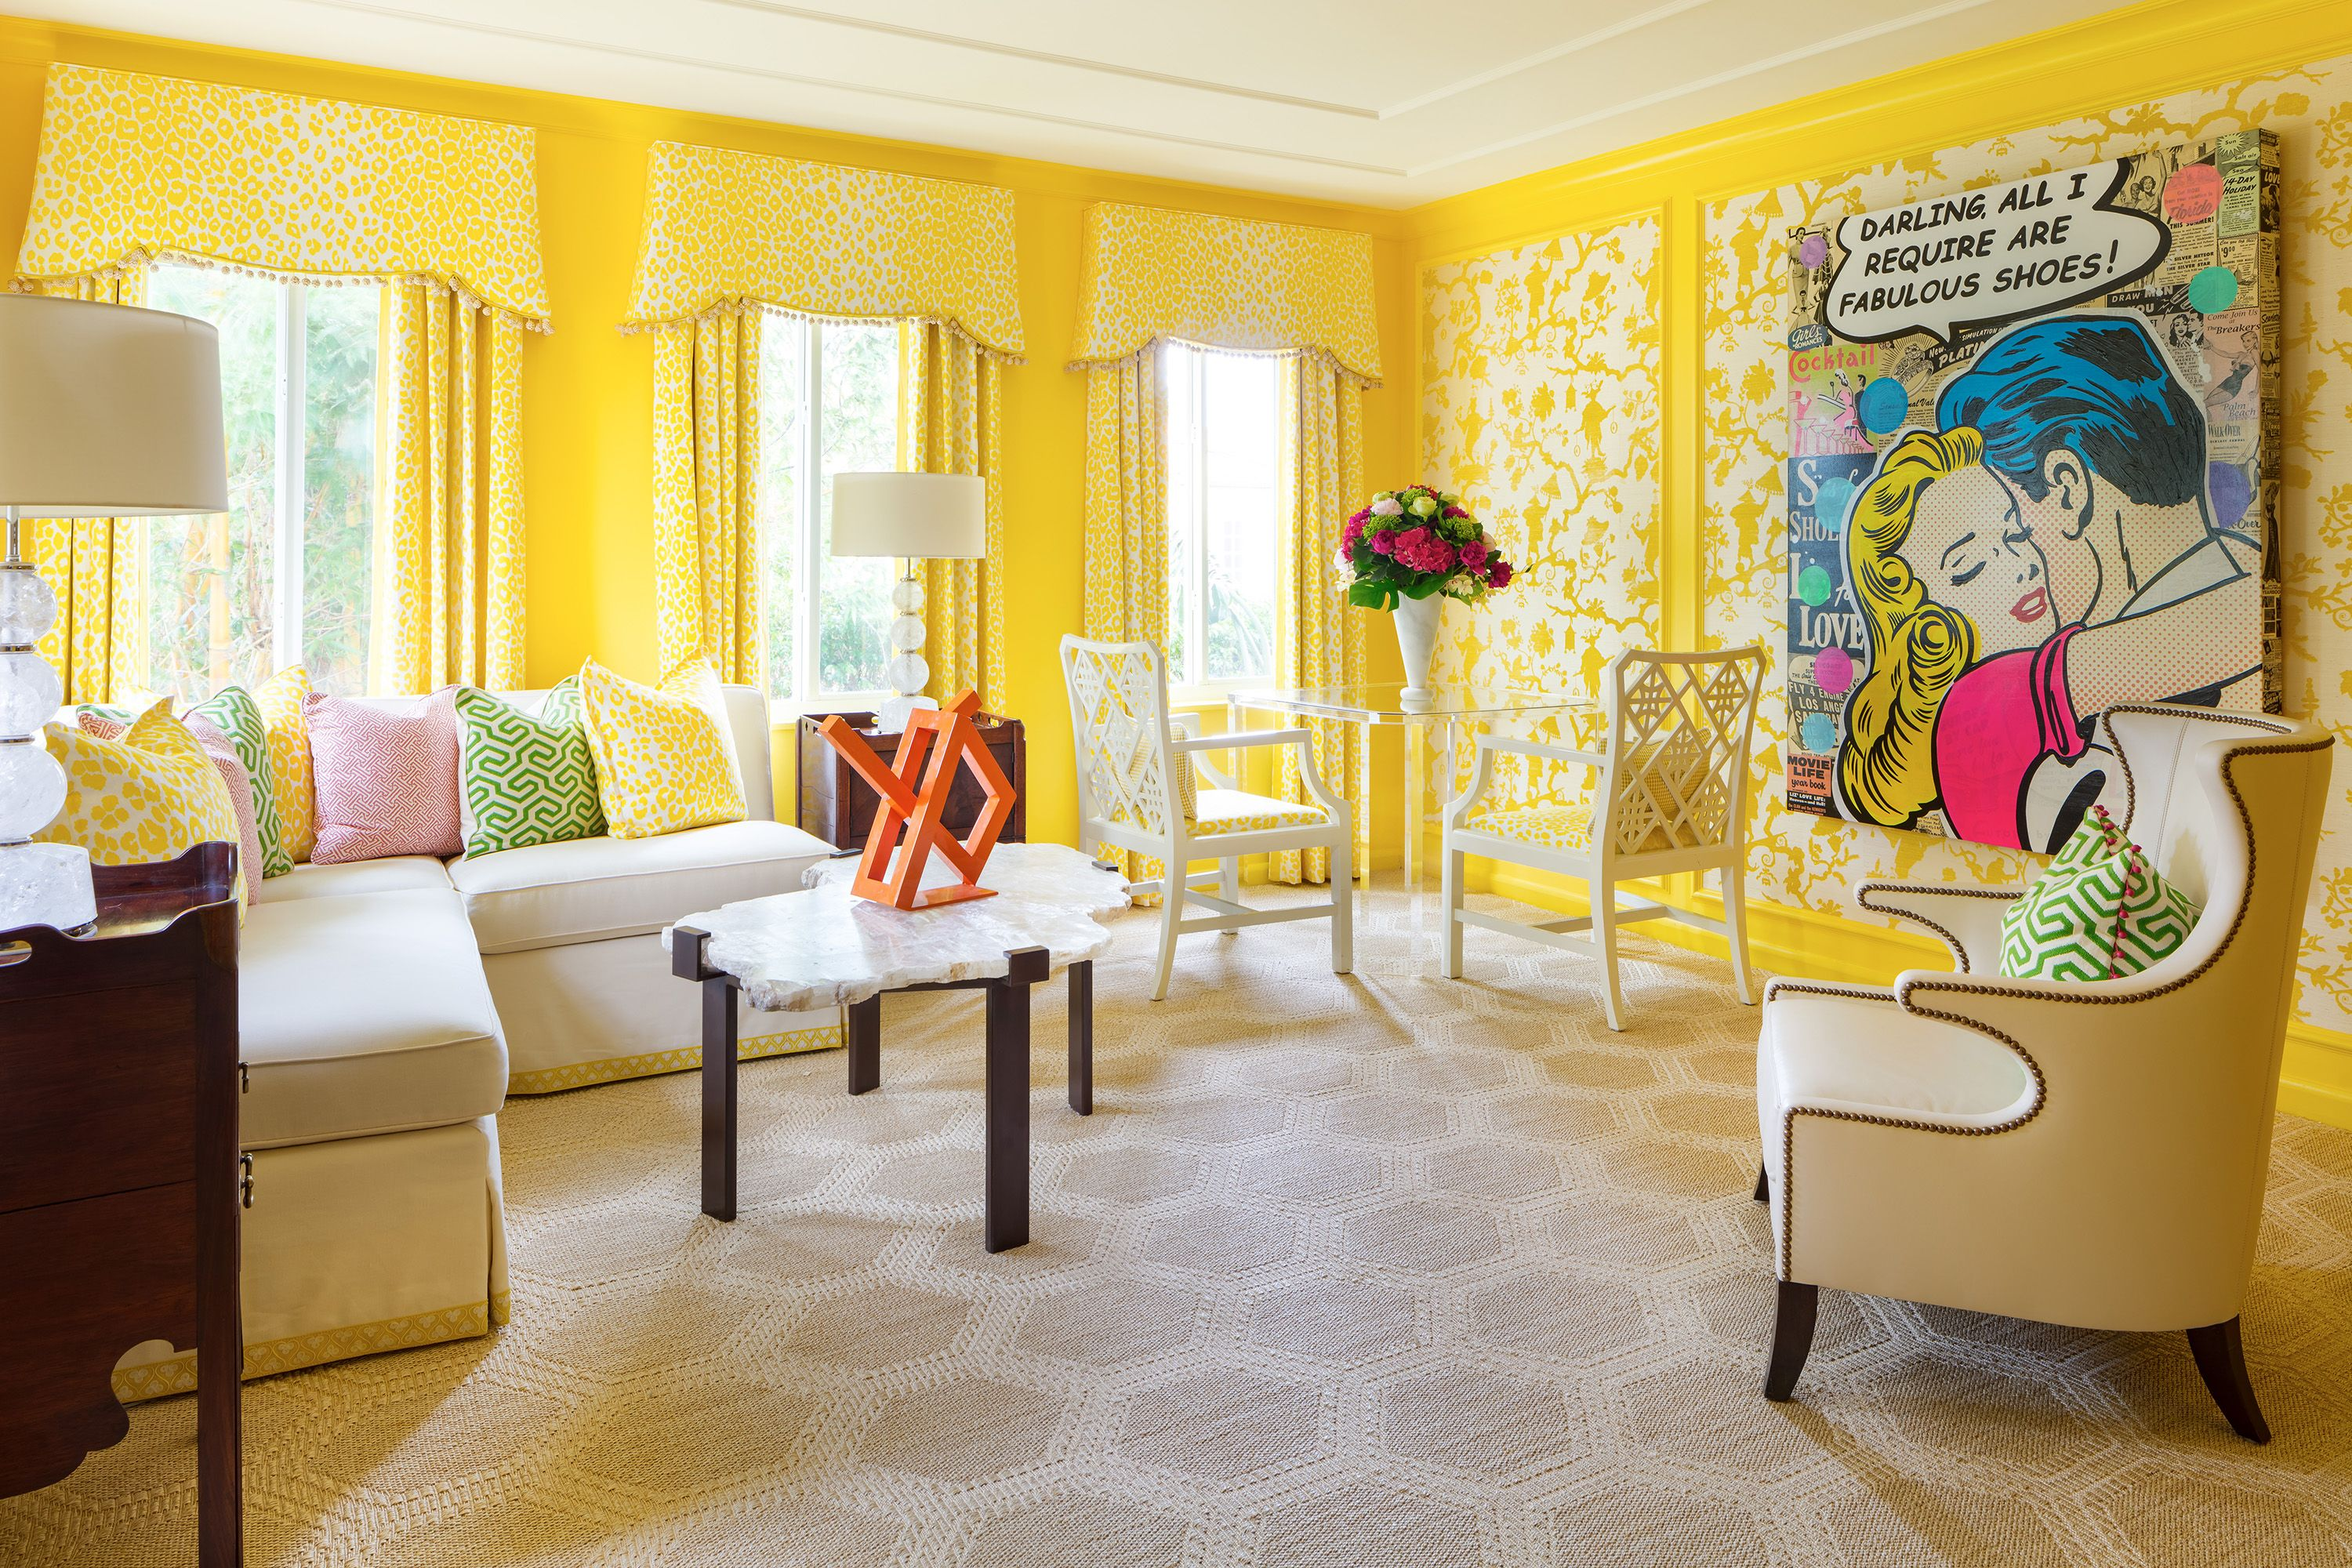 Take an Exclusive First Look at the Kips Bay Palm Beach House